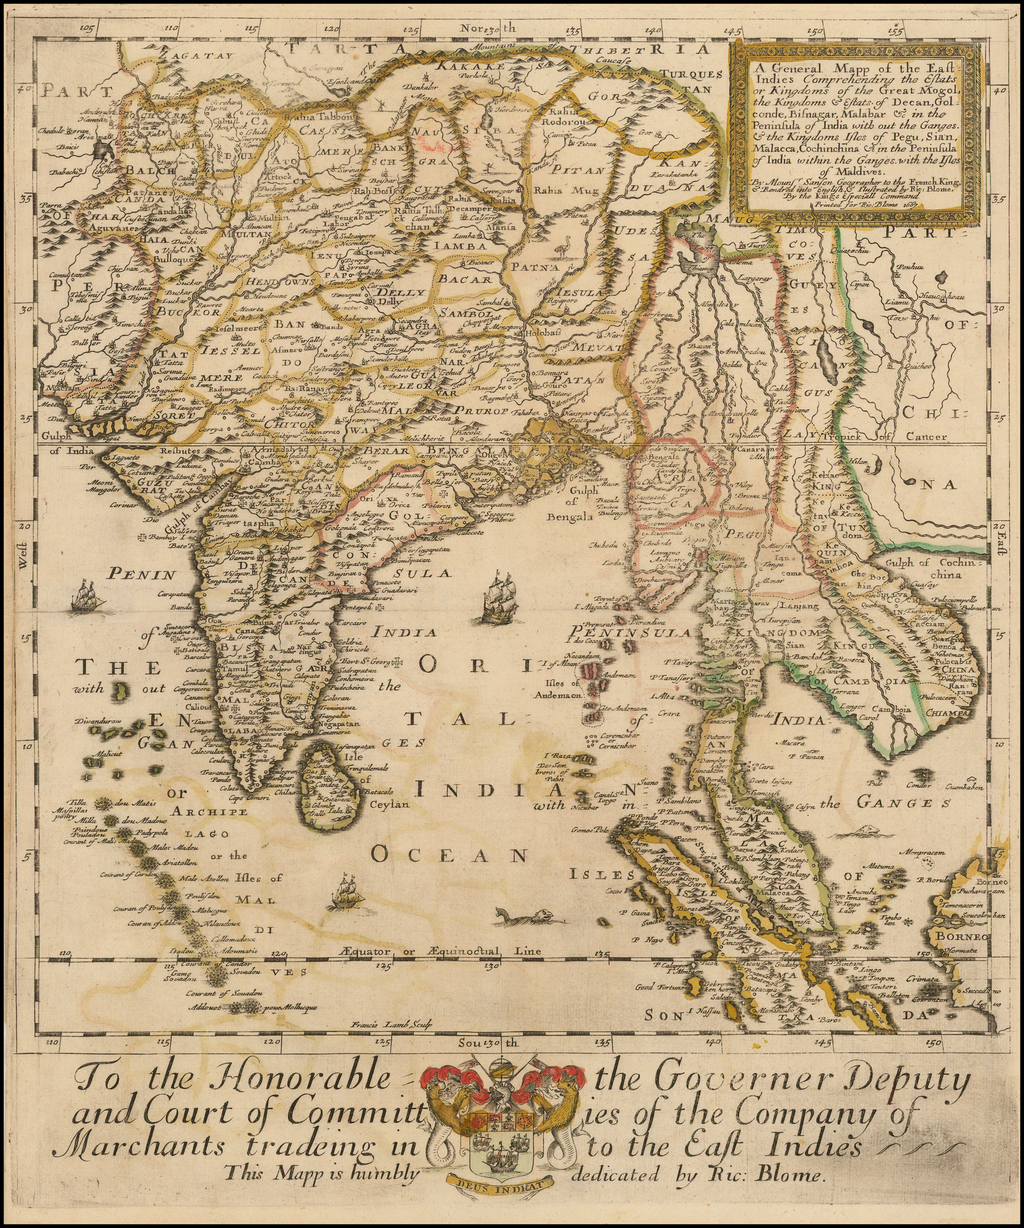 A General Mapp of the East Indies Comprehending the Estats or Kingdoms of the Great Mogol, the Kingdoms & Estats of Decan, Golconde, Bisnagar, Malabar & in the Peninsula of India with out the Ganges.  & the Kingdoms Isles Pegu, Sian, Malacca, Cochinchina . . . 1667 By Richard Blome